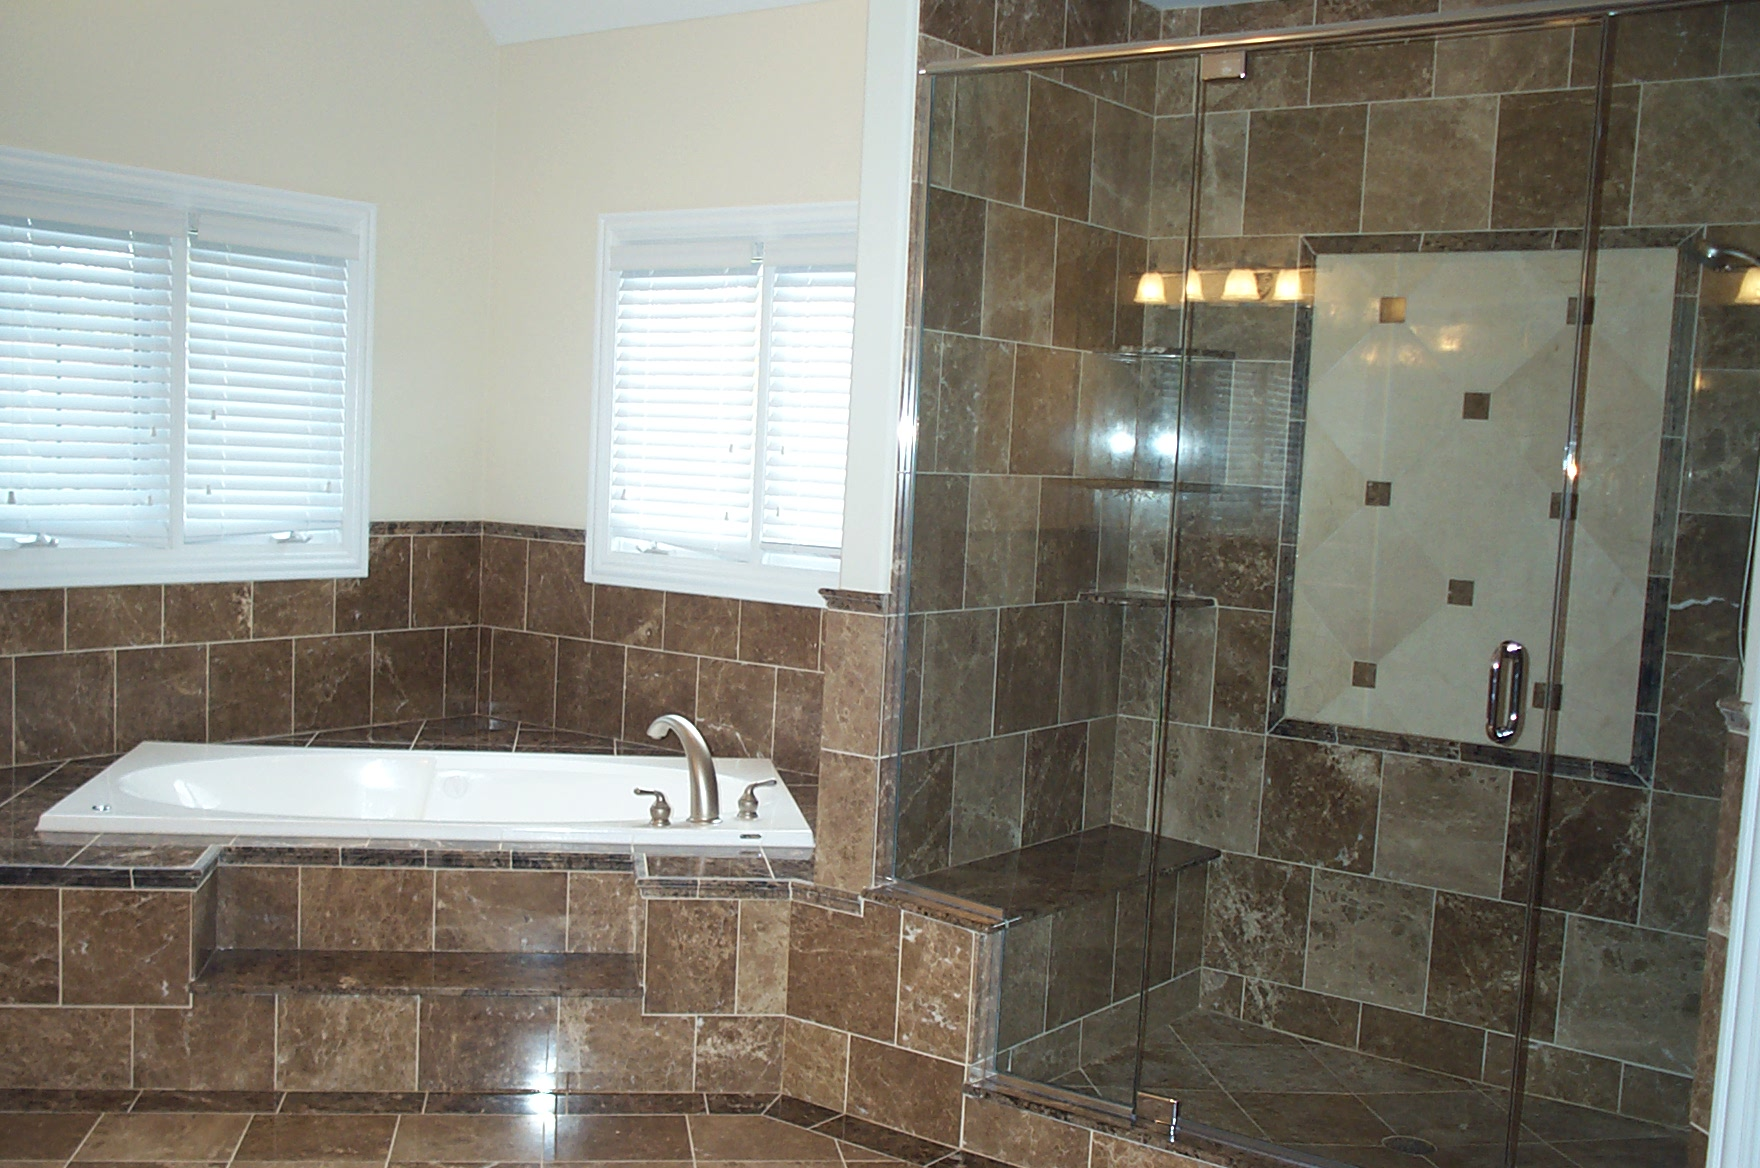 Bathroom Remodel How To Small Bathroom Remodel How To A